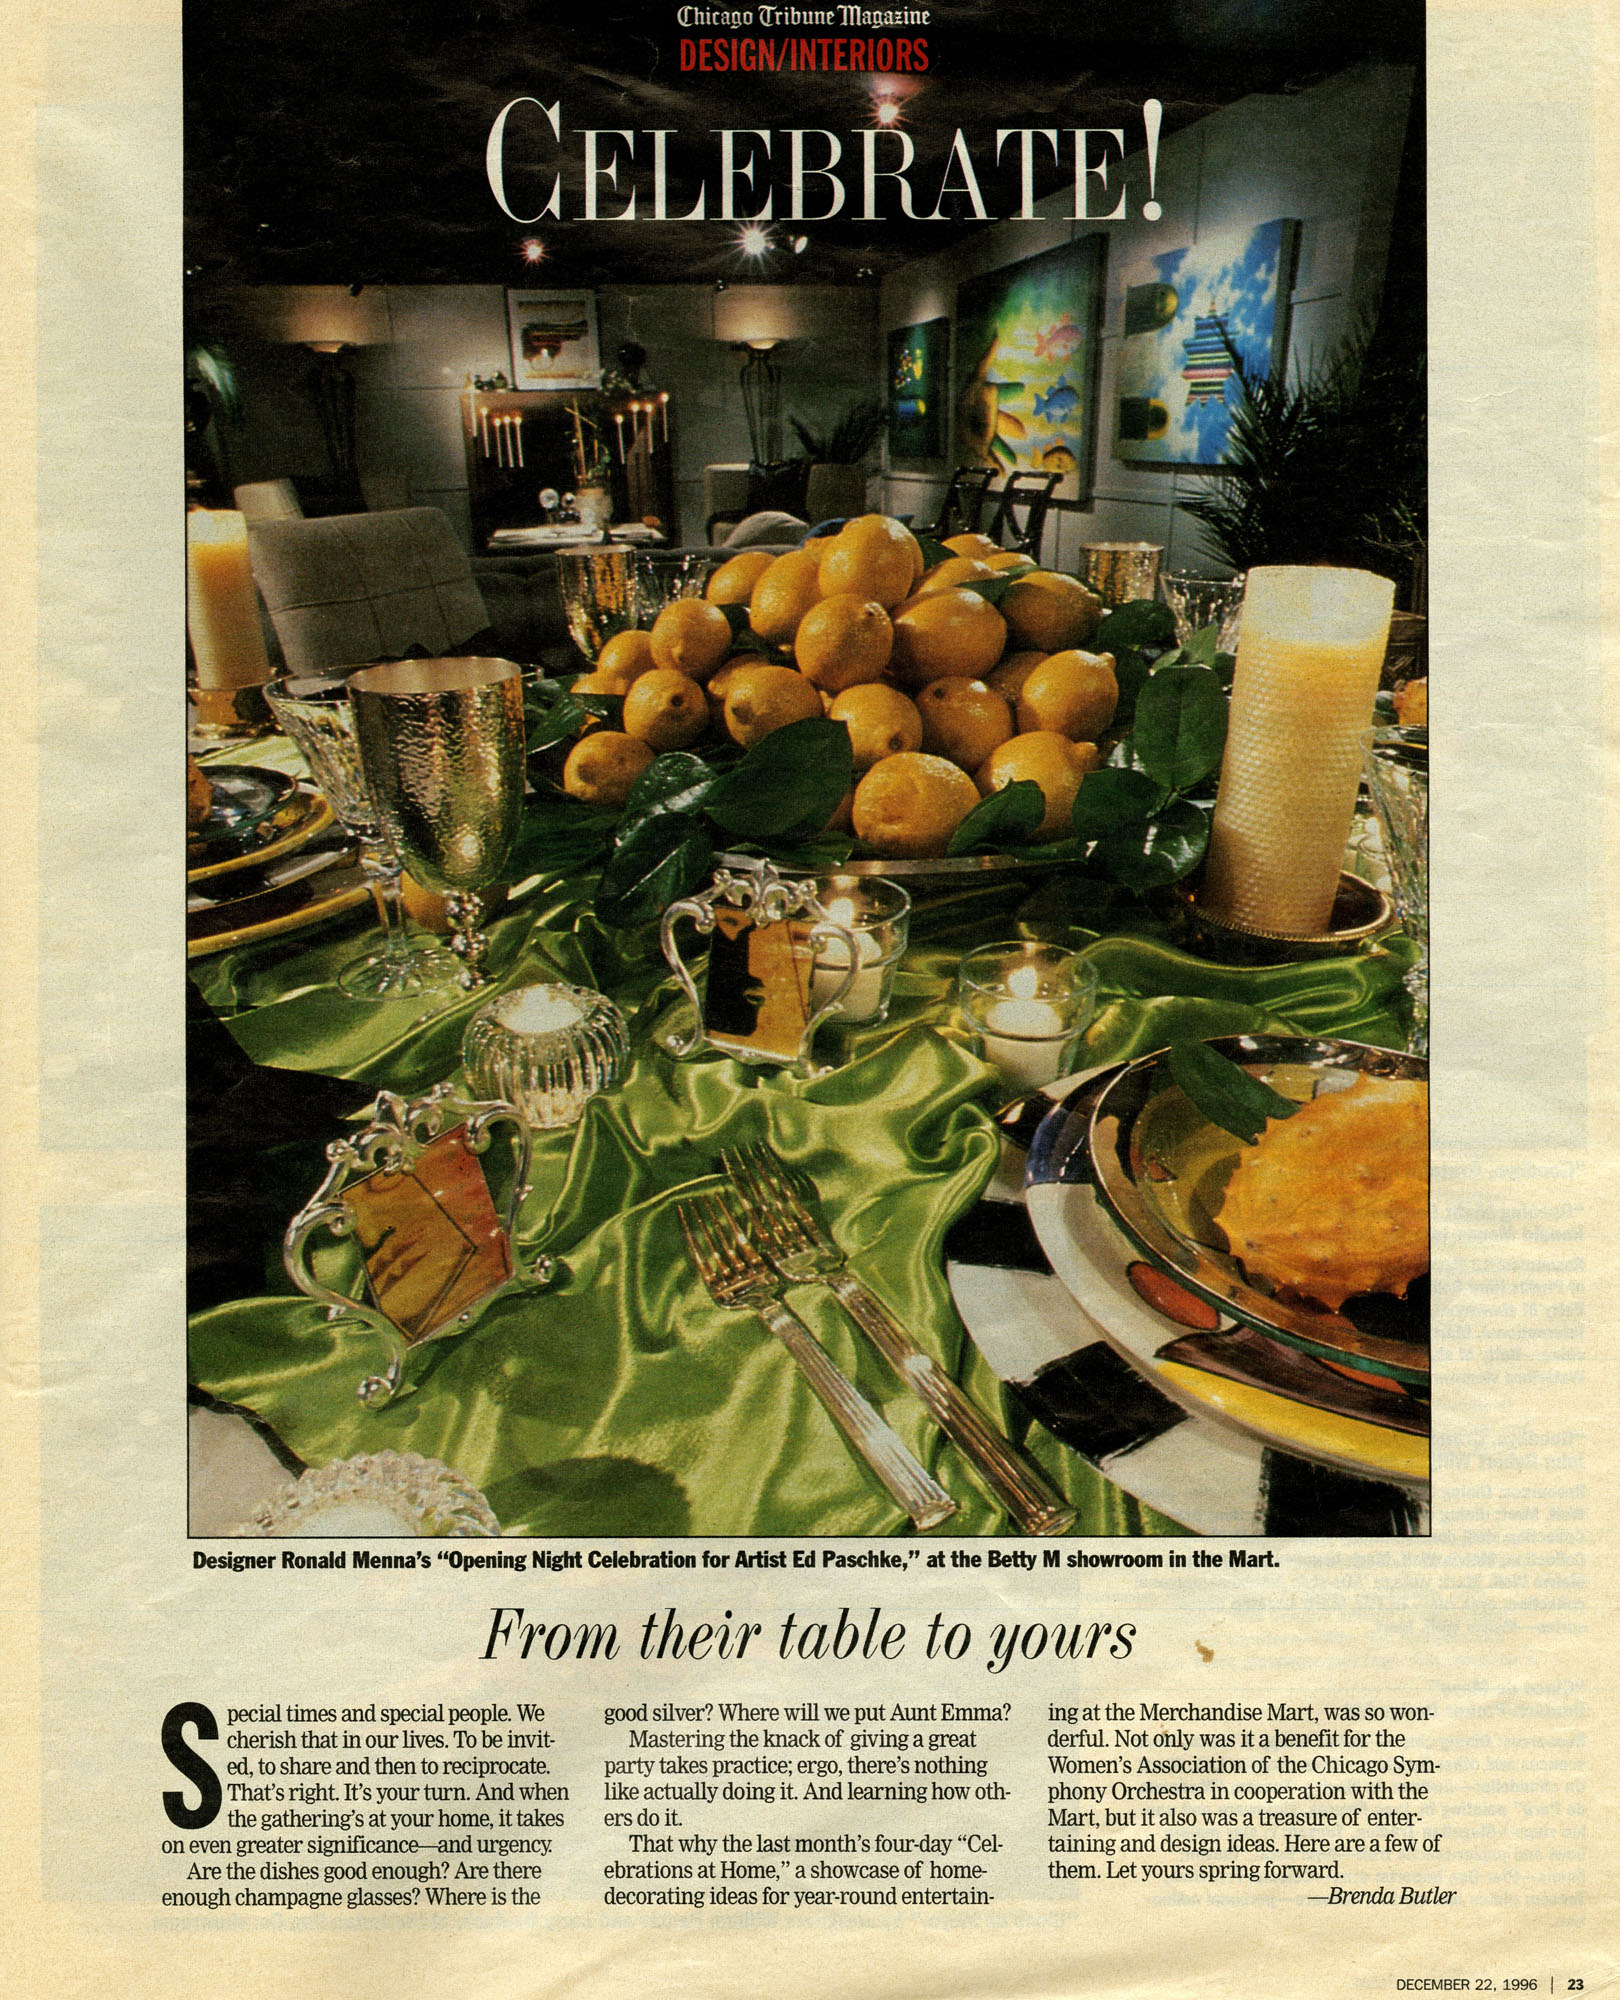 dec22,1996 chicago tribune magazine- From Their Table to Yours